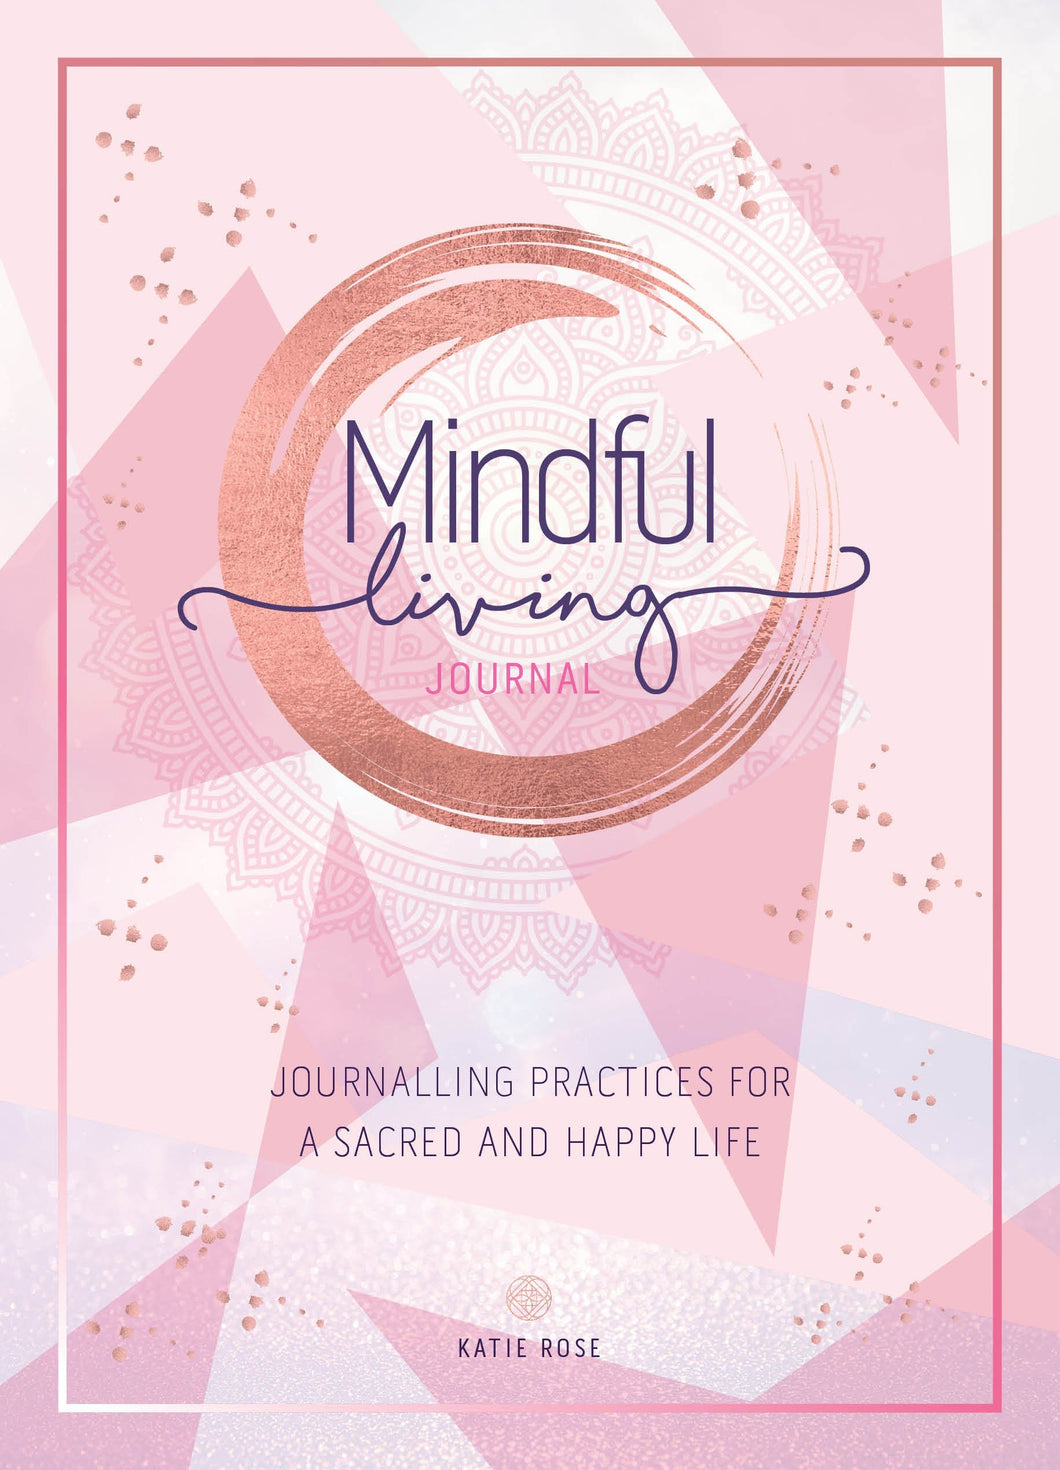 Mindful living journal